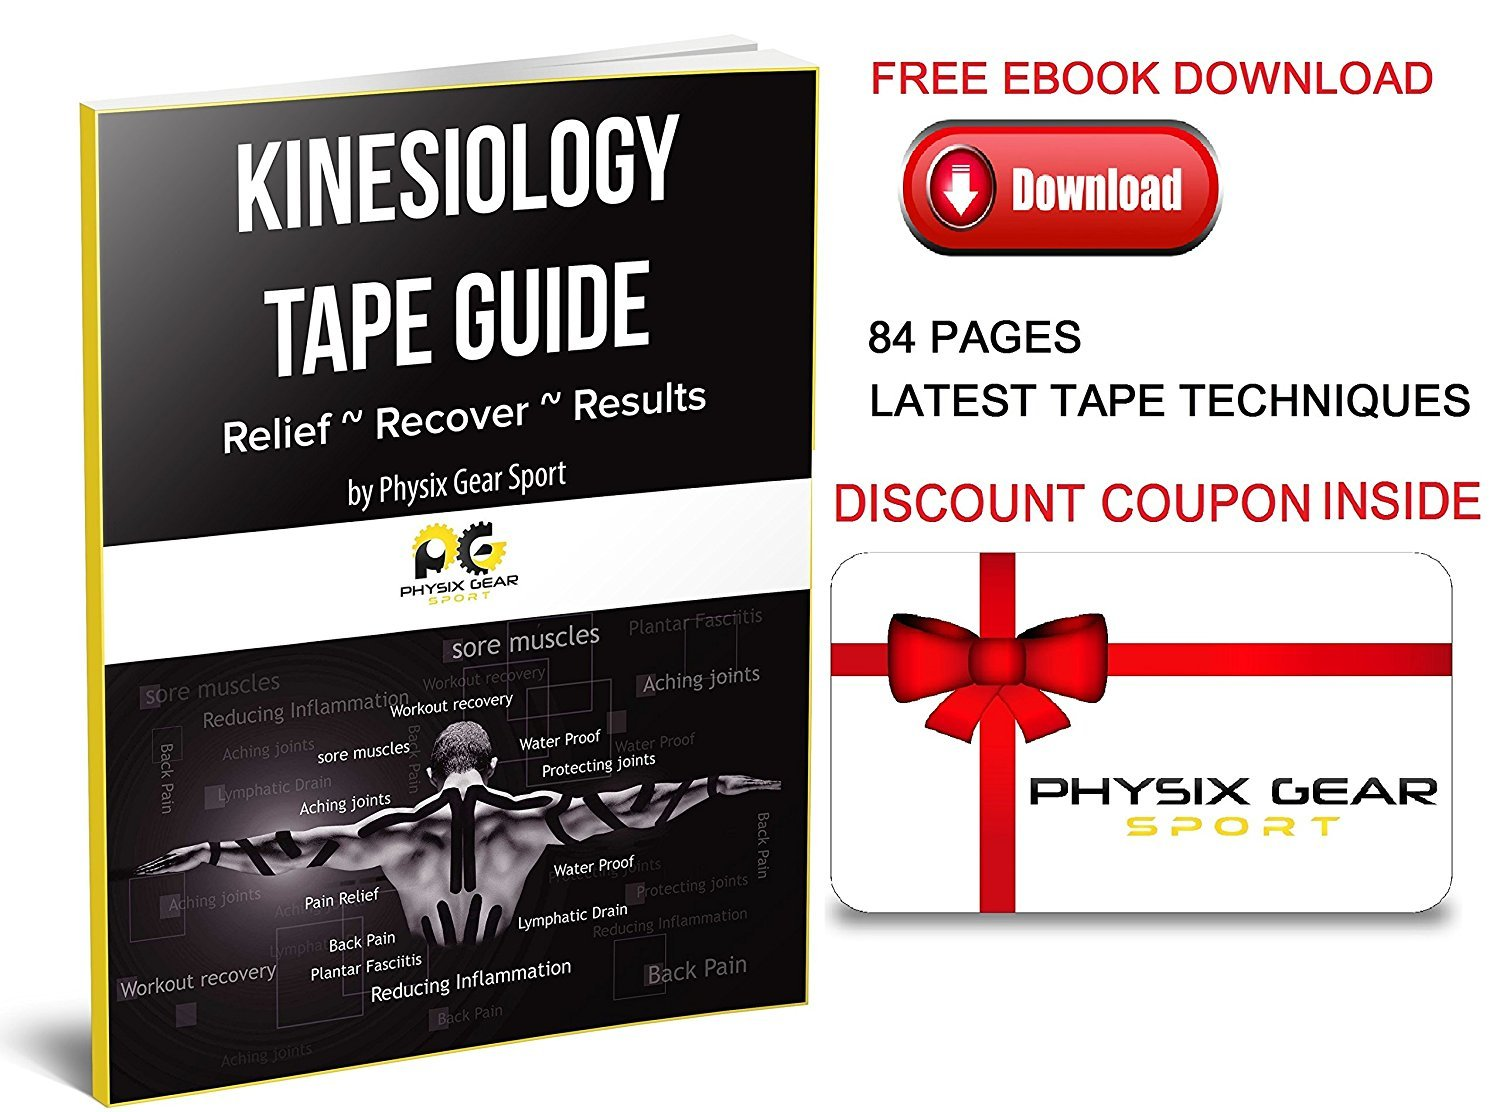 Physix Gear Sport Kinesiology Tape - Free Illustrated E-Guide - 16ft Uncut Roll - Best Pain Relief Adhesive for Muscles, Shin Splints Knee & Shoulder - 24/7 Waterproof Therapeutic Aid (2PK PNK) by Physix Gear Sport (Image #10)